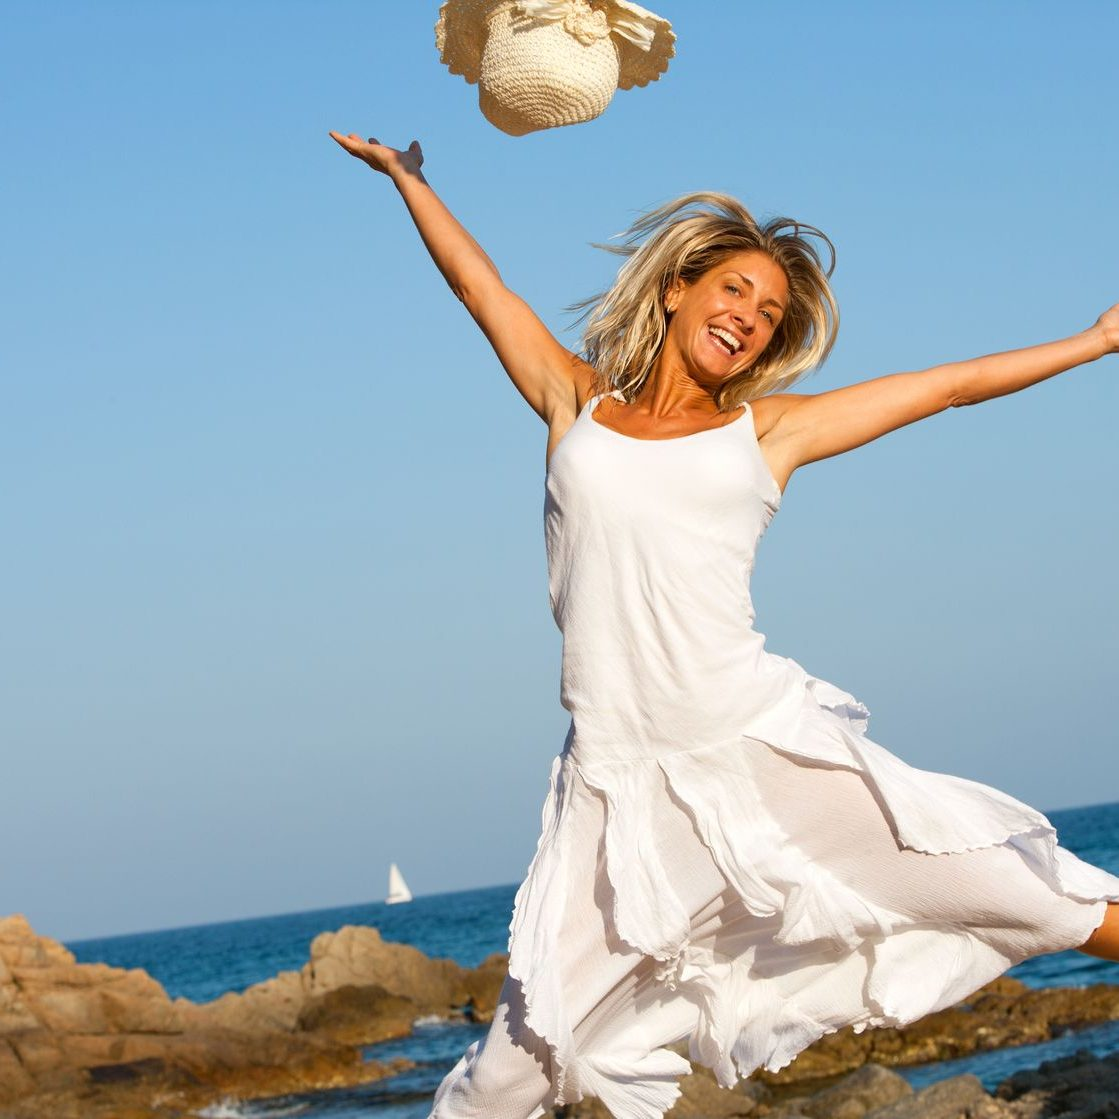 14260581 - happy young woman in white dress jumping on beach